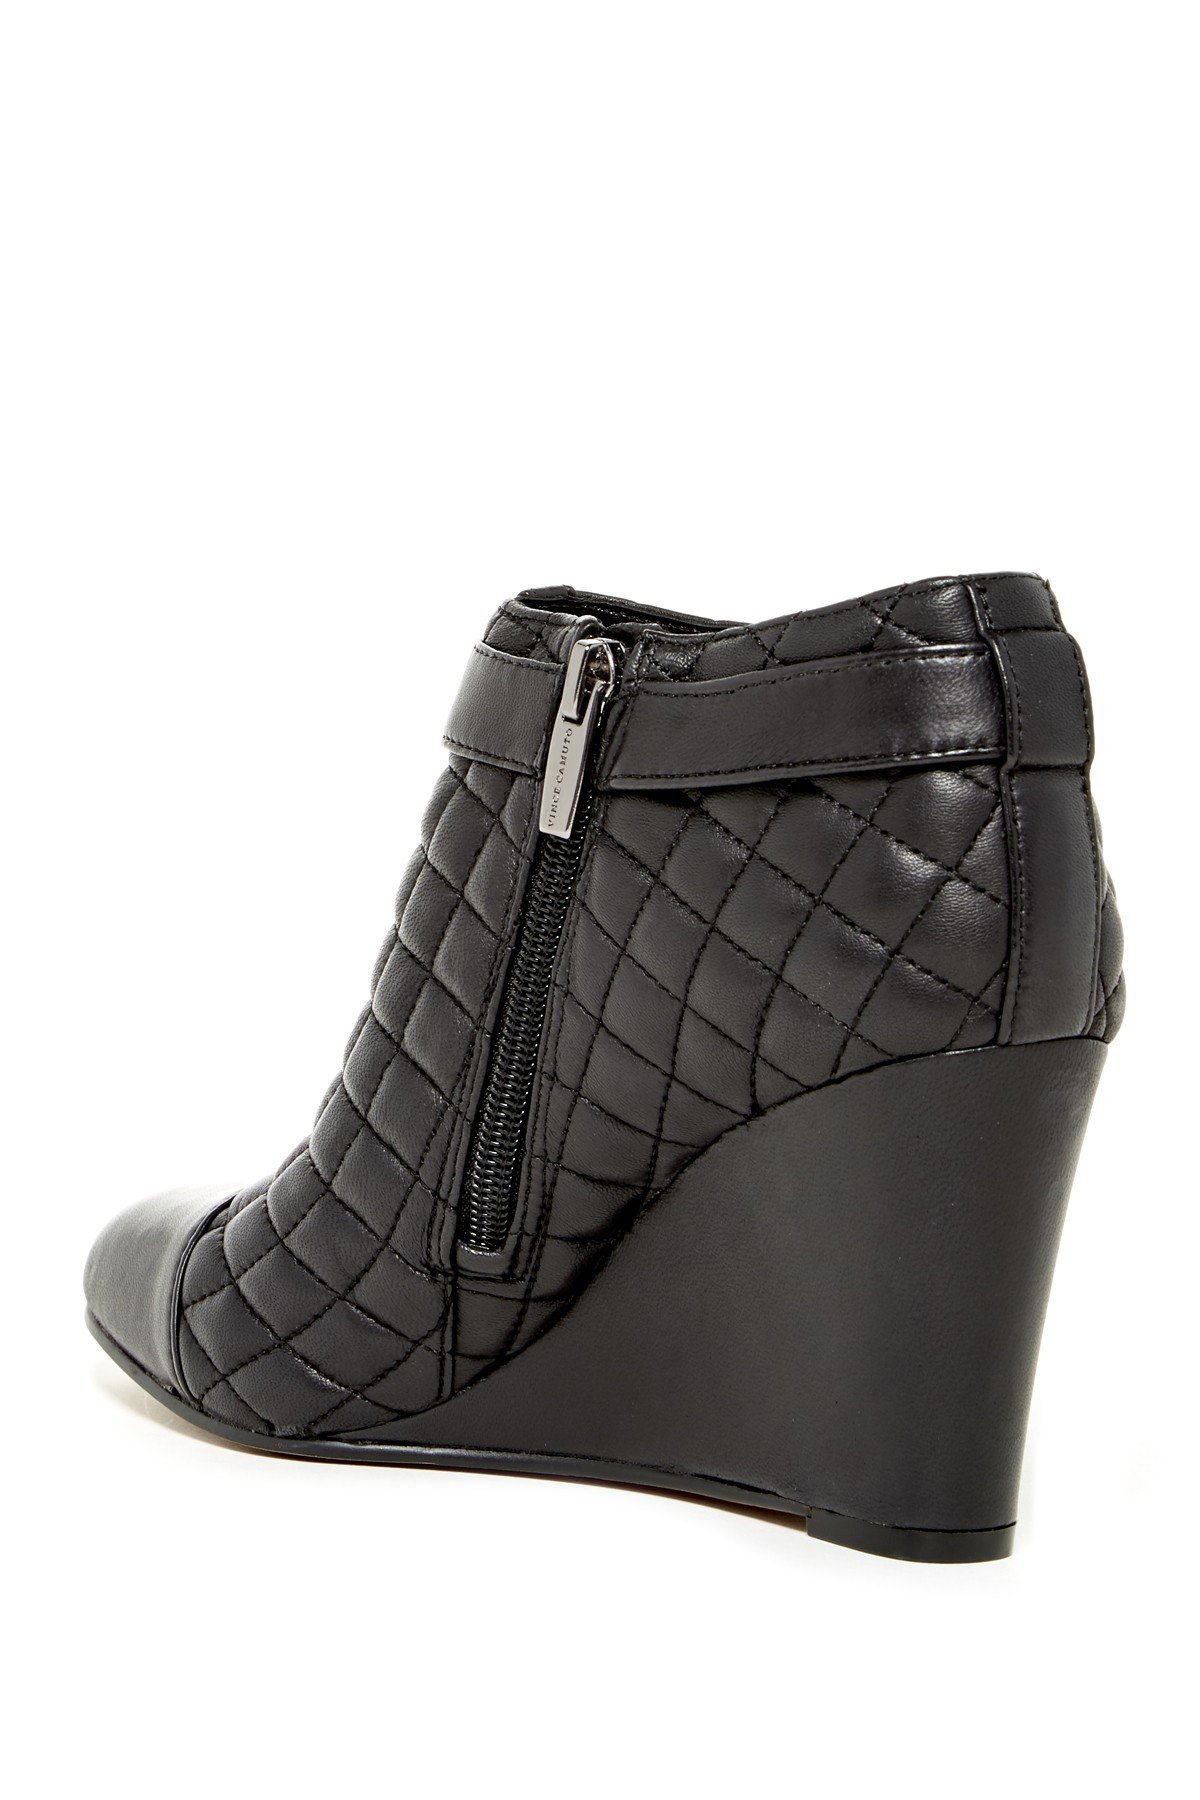 Vince Camuto Loore Quilted Wedge Boots In Black Lyst